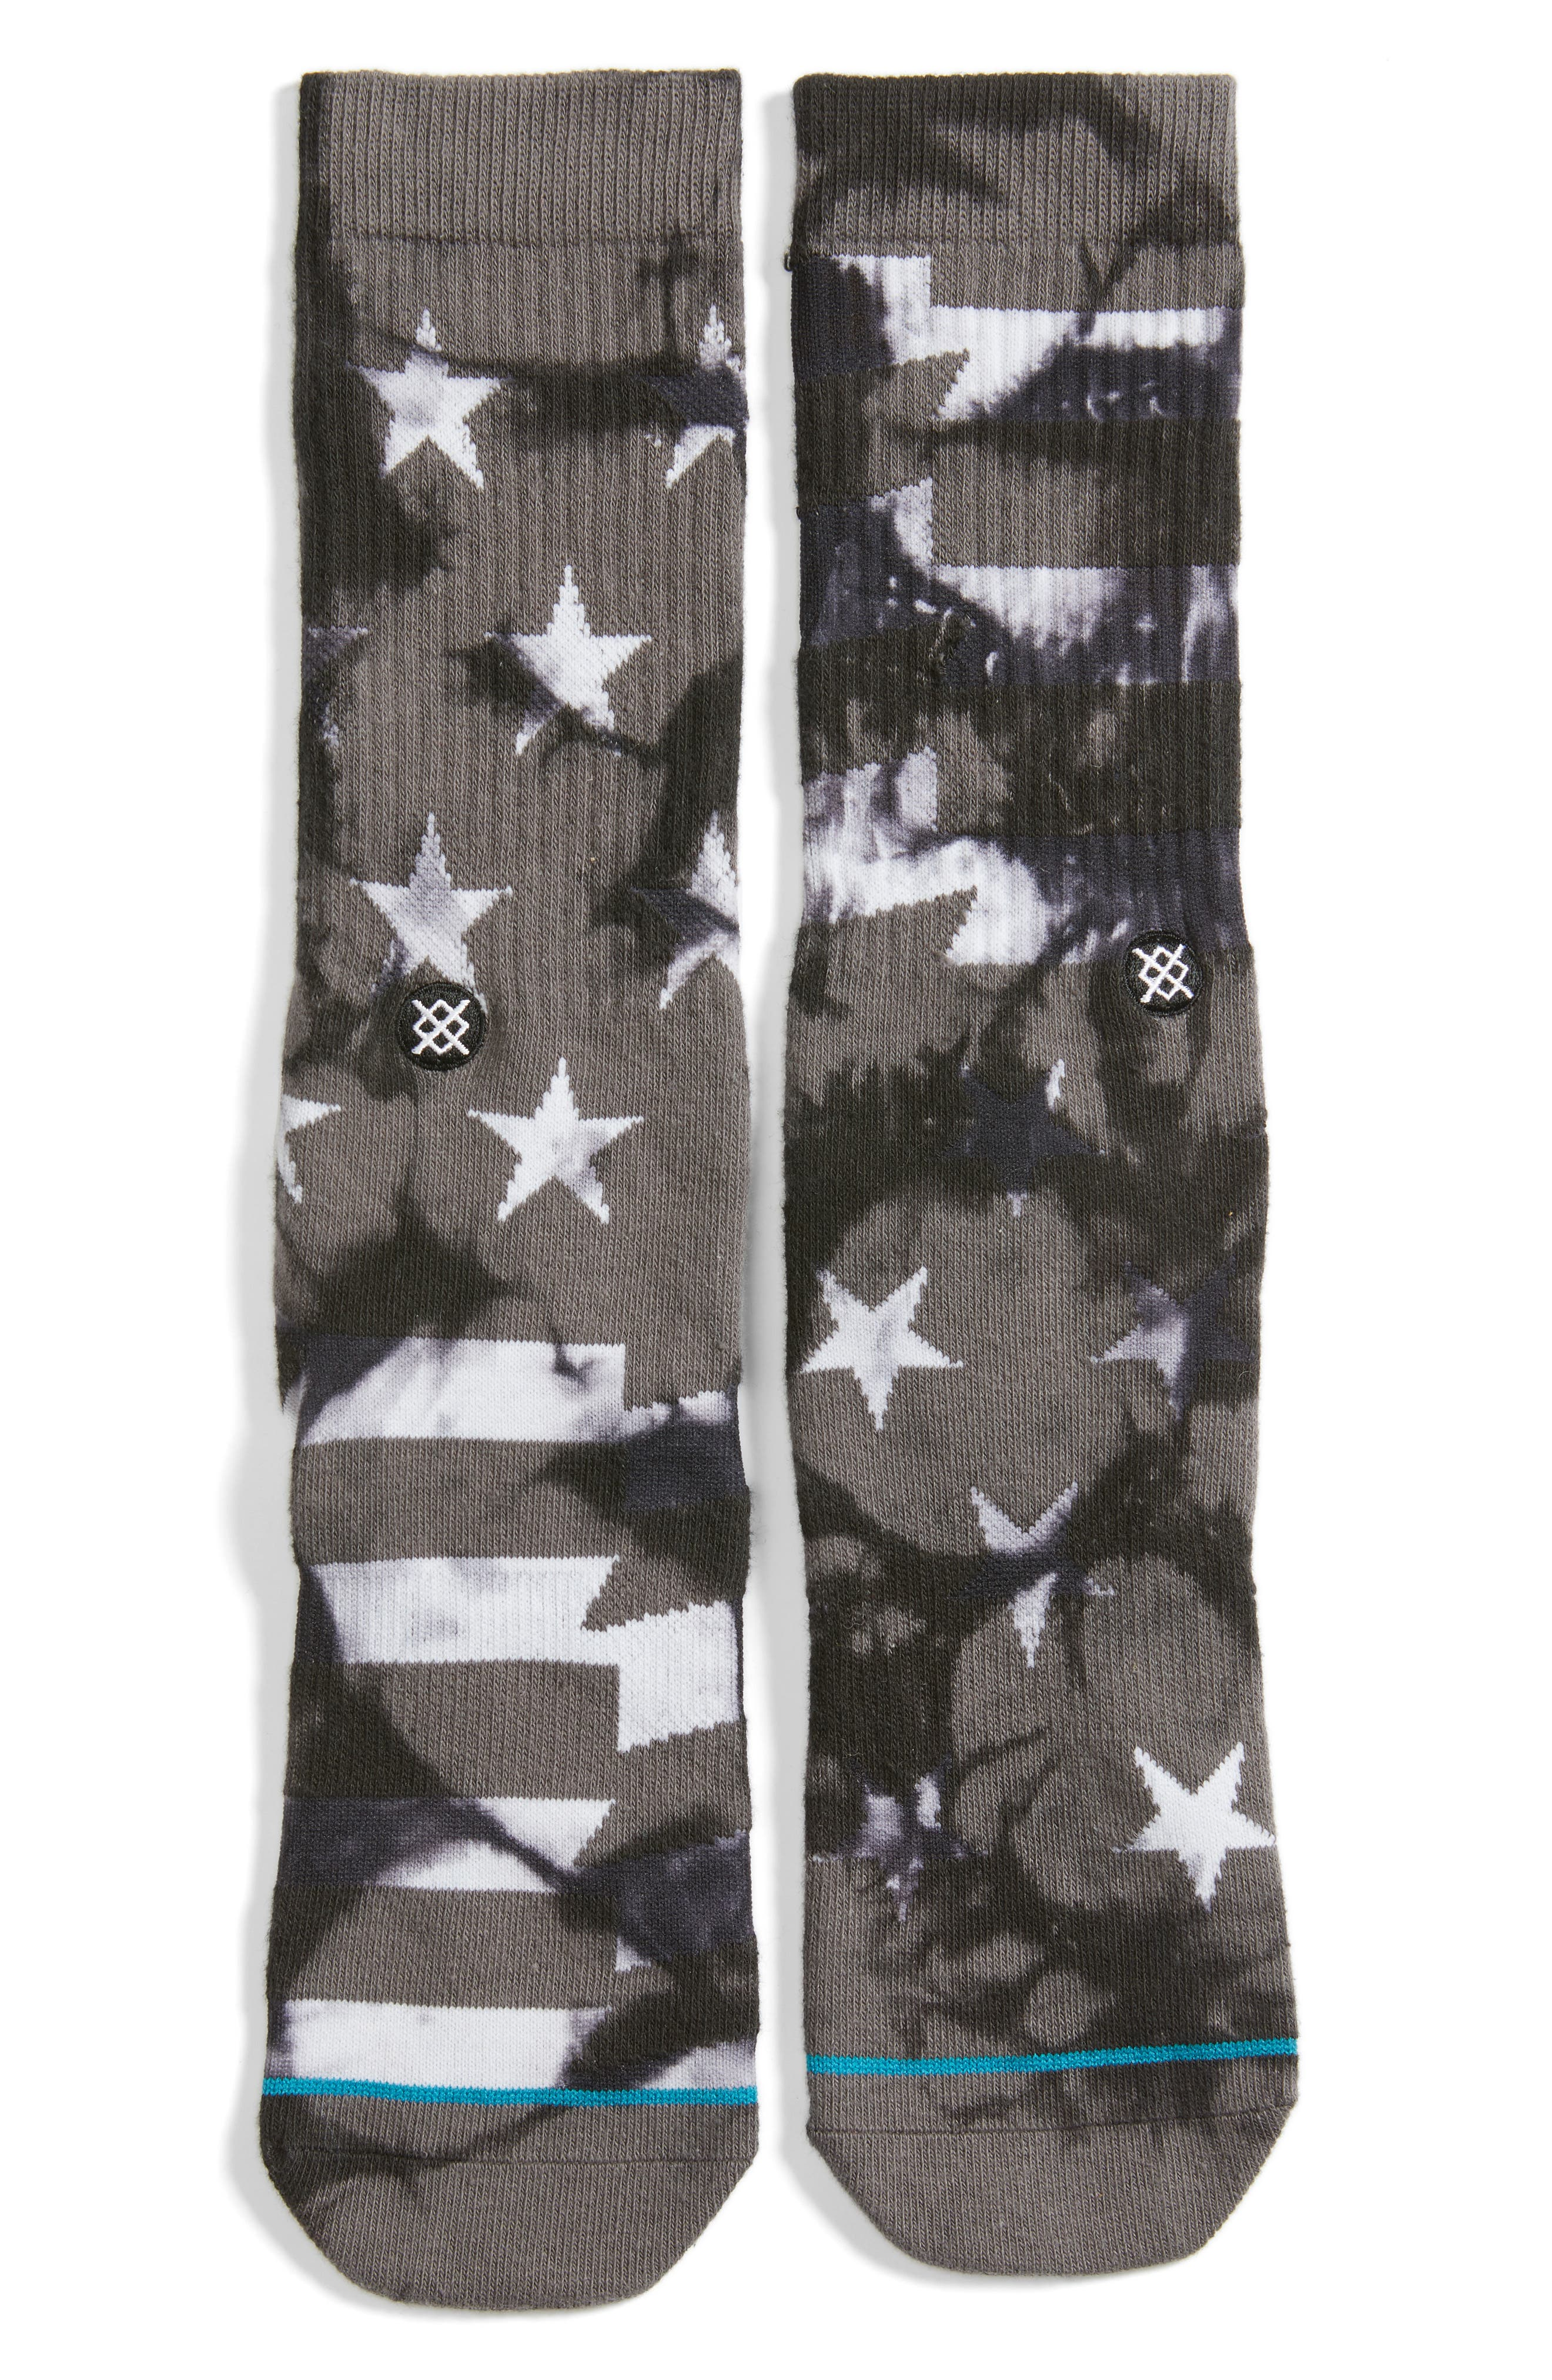 Alternate Image 1 Selected - Stance Victory Crew Socks